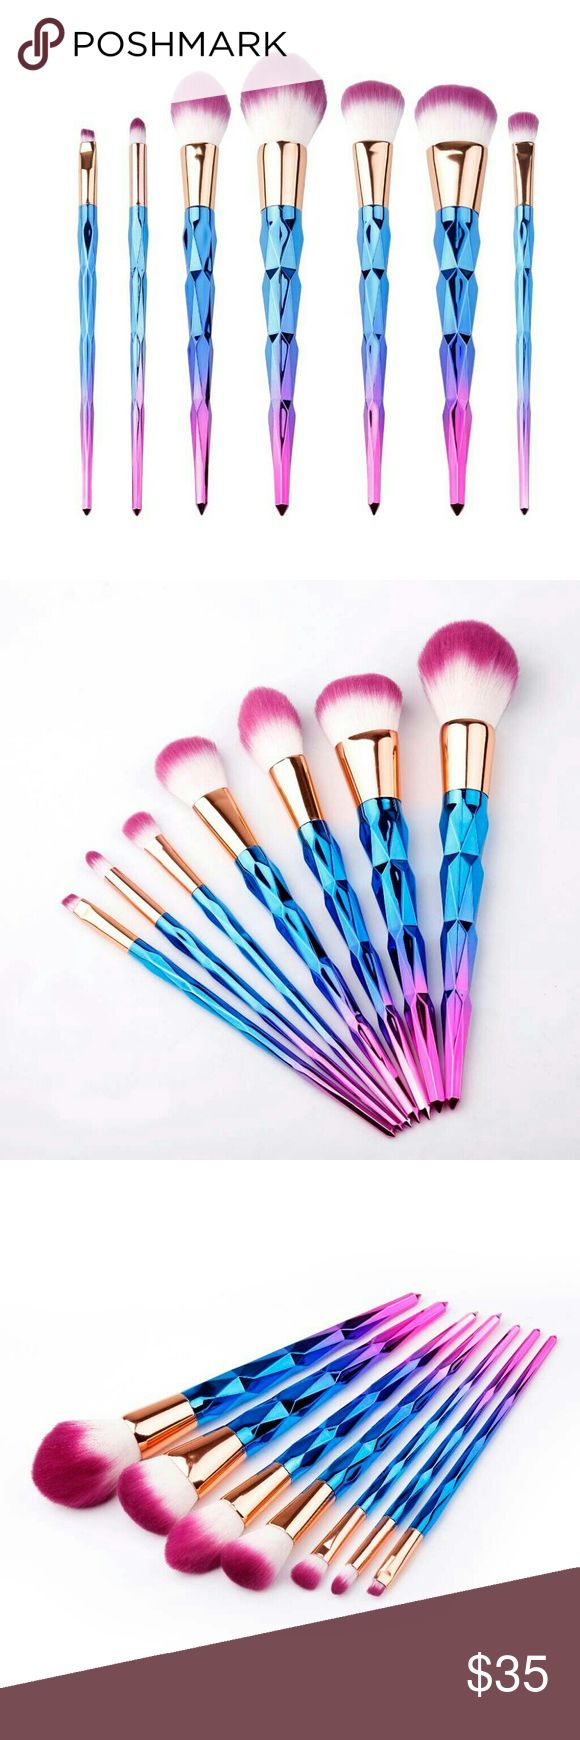 Unicorn Rainbow Makeup Brush Set Brand new rainbow unicorn makeup brush set...7 pc set for powder blush and eyeshadows. See boutique for more fashions and beauty. Day Dreams Cosmetics Makeup Brushes & Tools